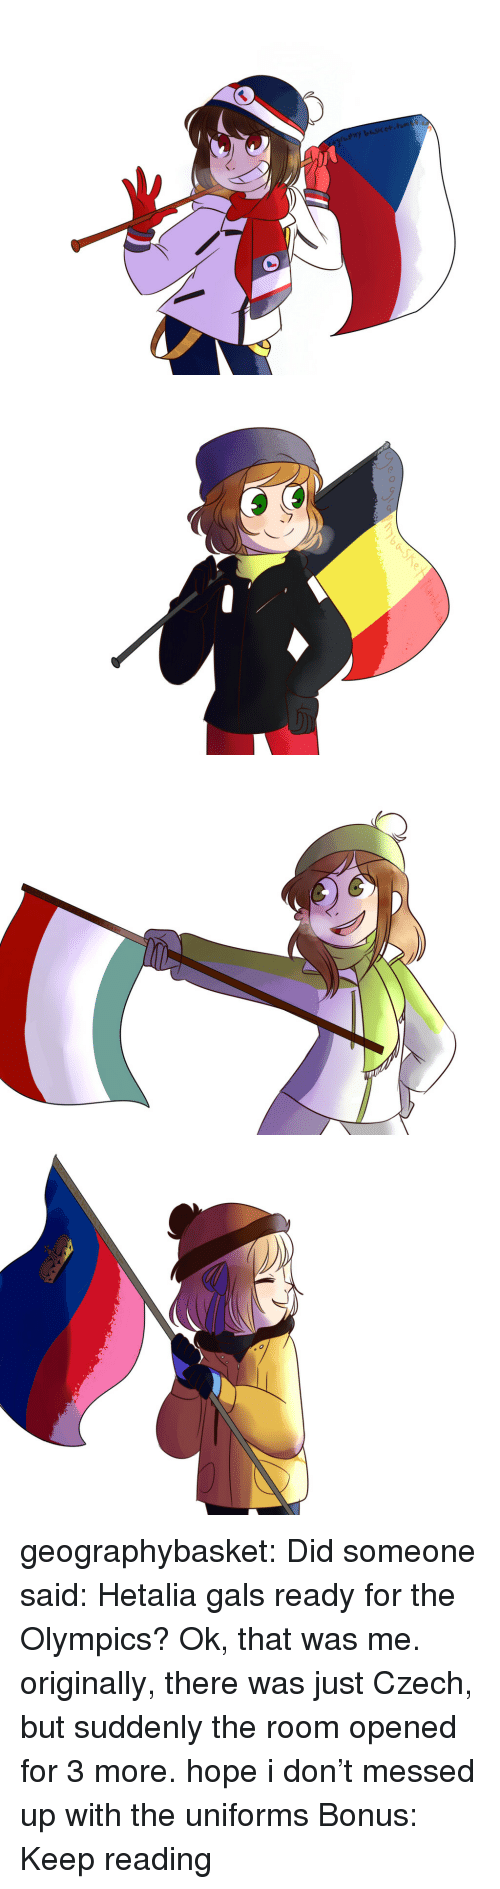 the olympics: geographybasket:  Did someone said: Hetalia gals ready for the Olympics? Ok, that was me. originally, there was just Czech, butsuddenlythe room opened for 3 more. hope i don't messed up with the uniforms Bonus: Keep reading